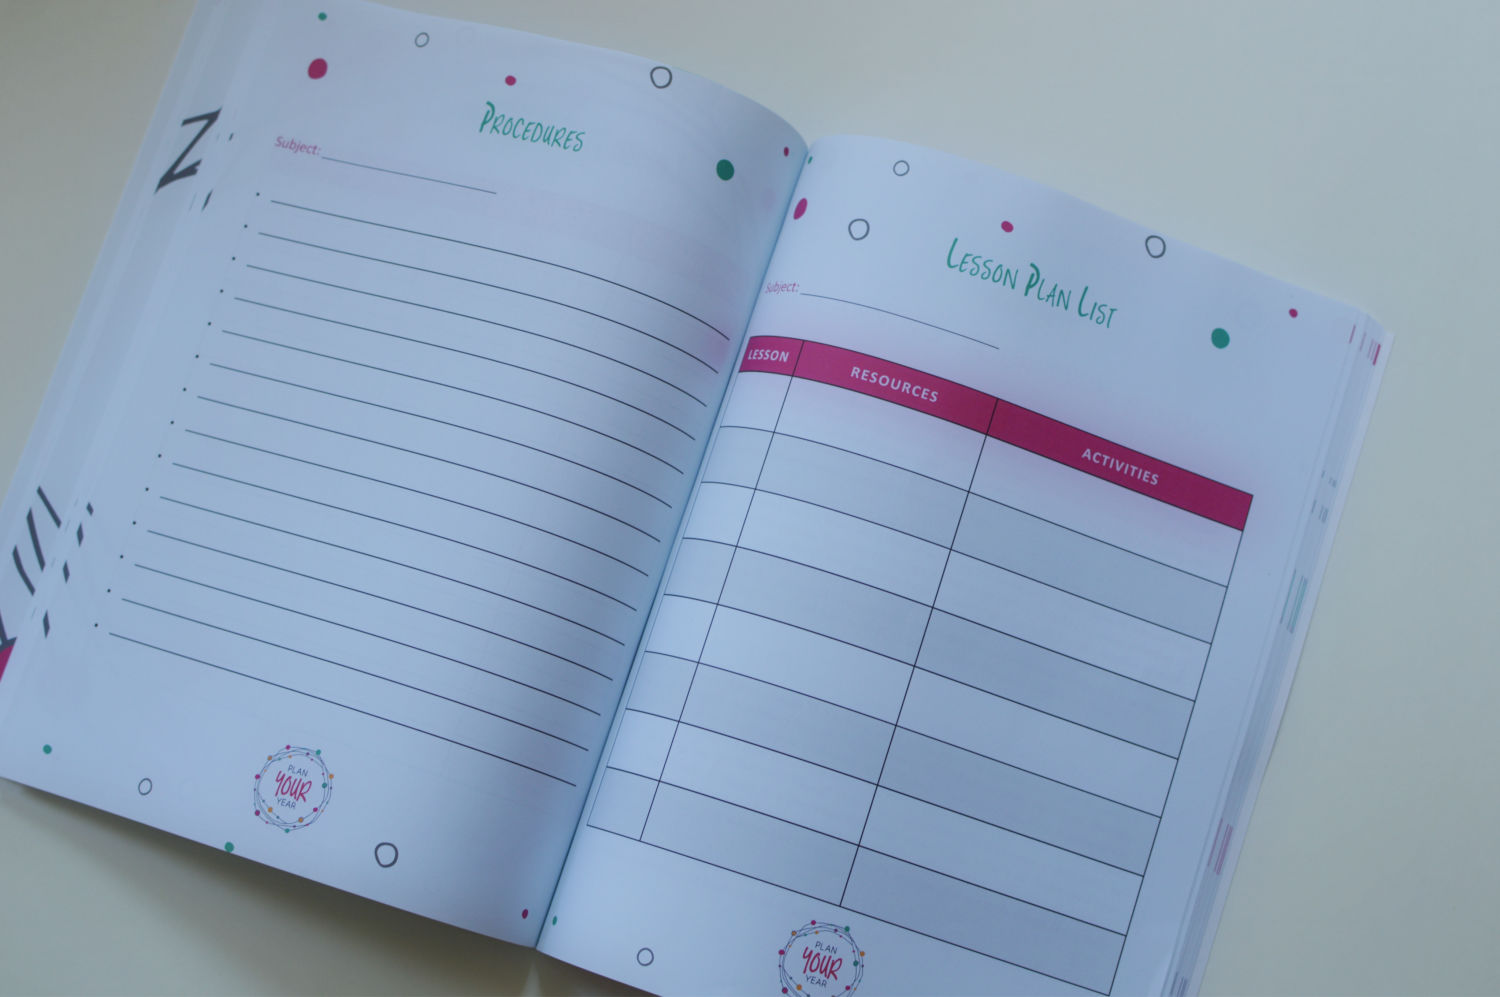 Plan Your Year by Pam Barnhill Review & Giveaway